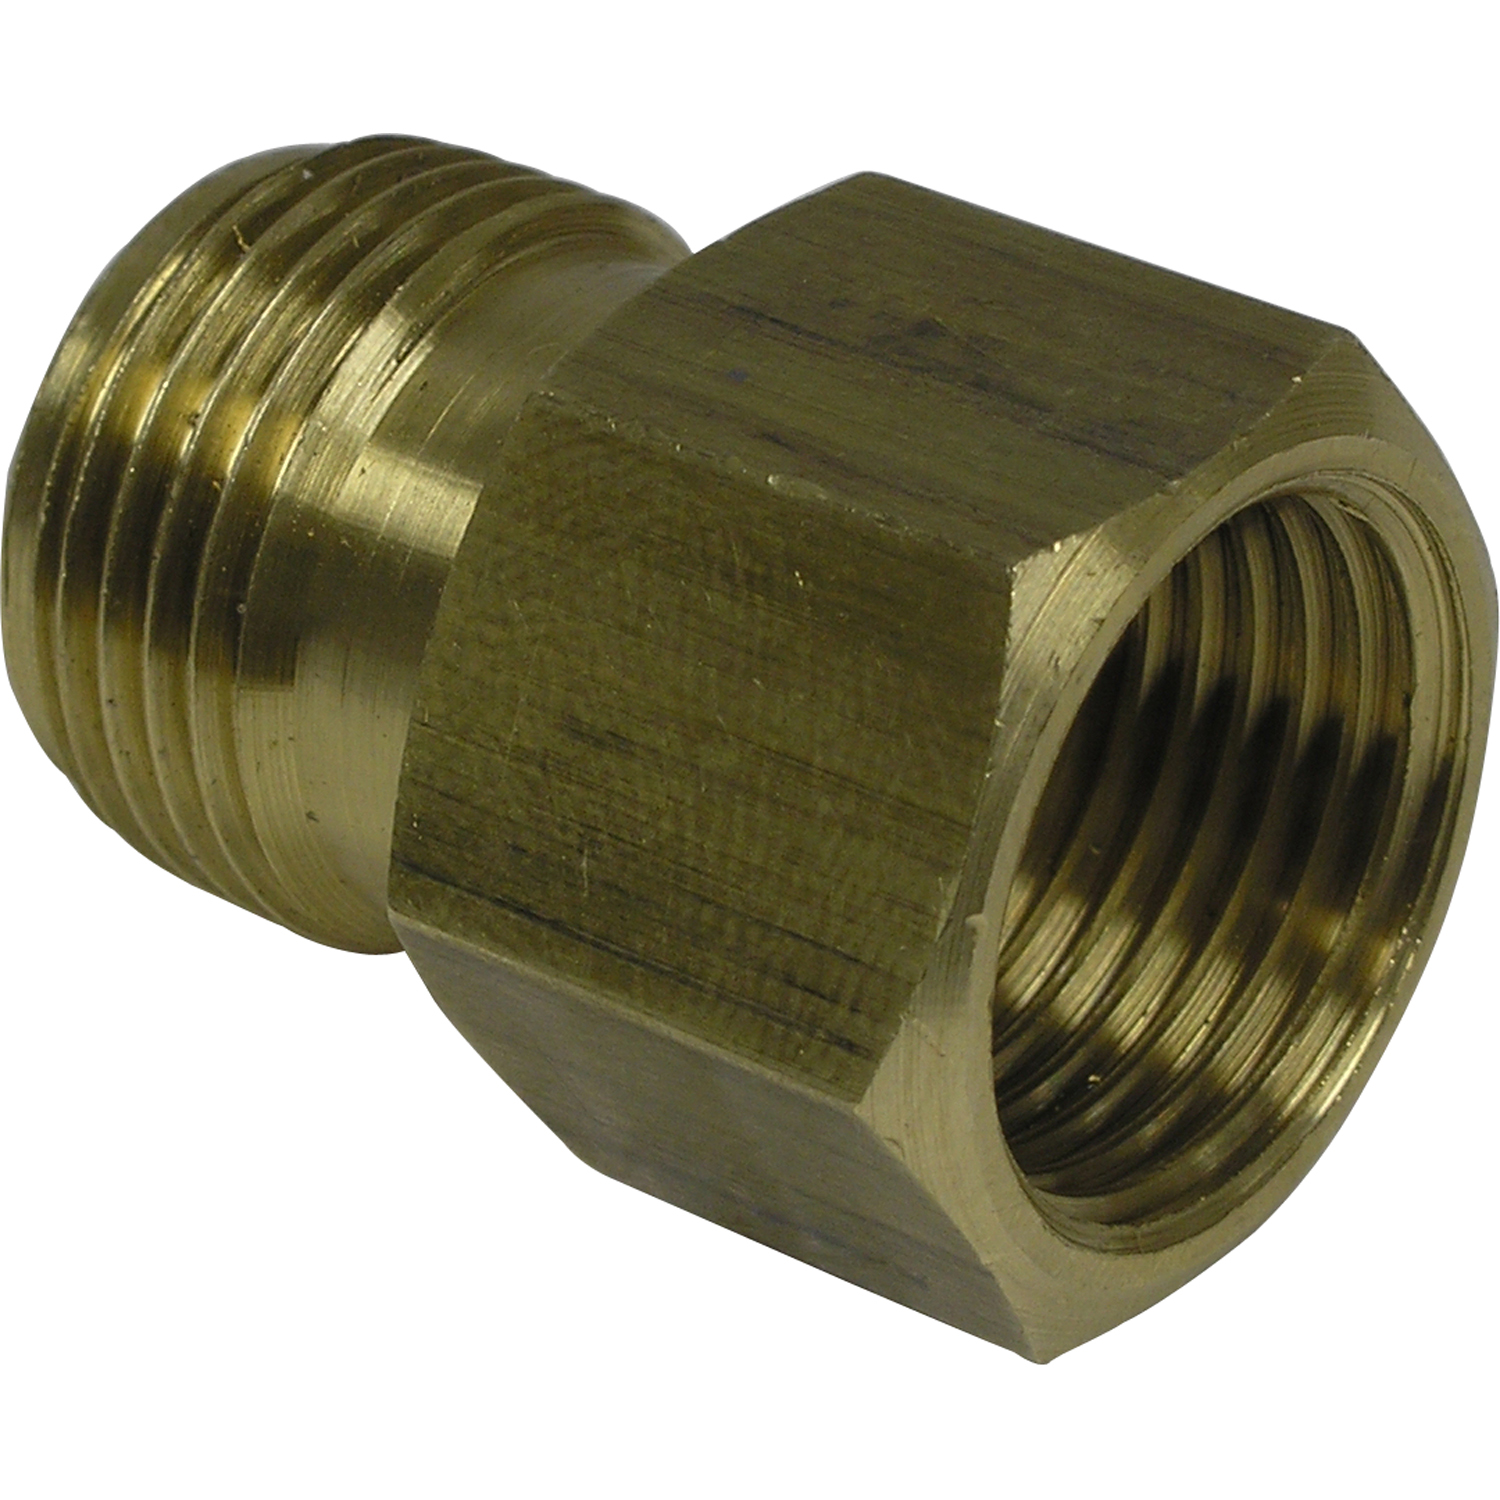 FT 8332 Adapters